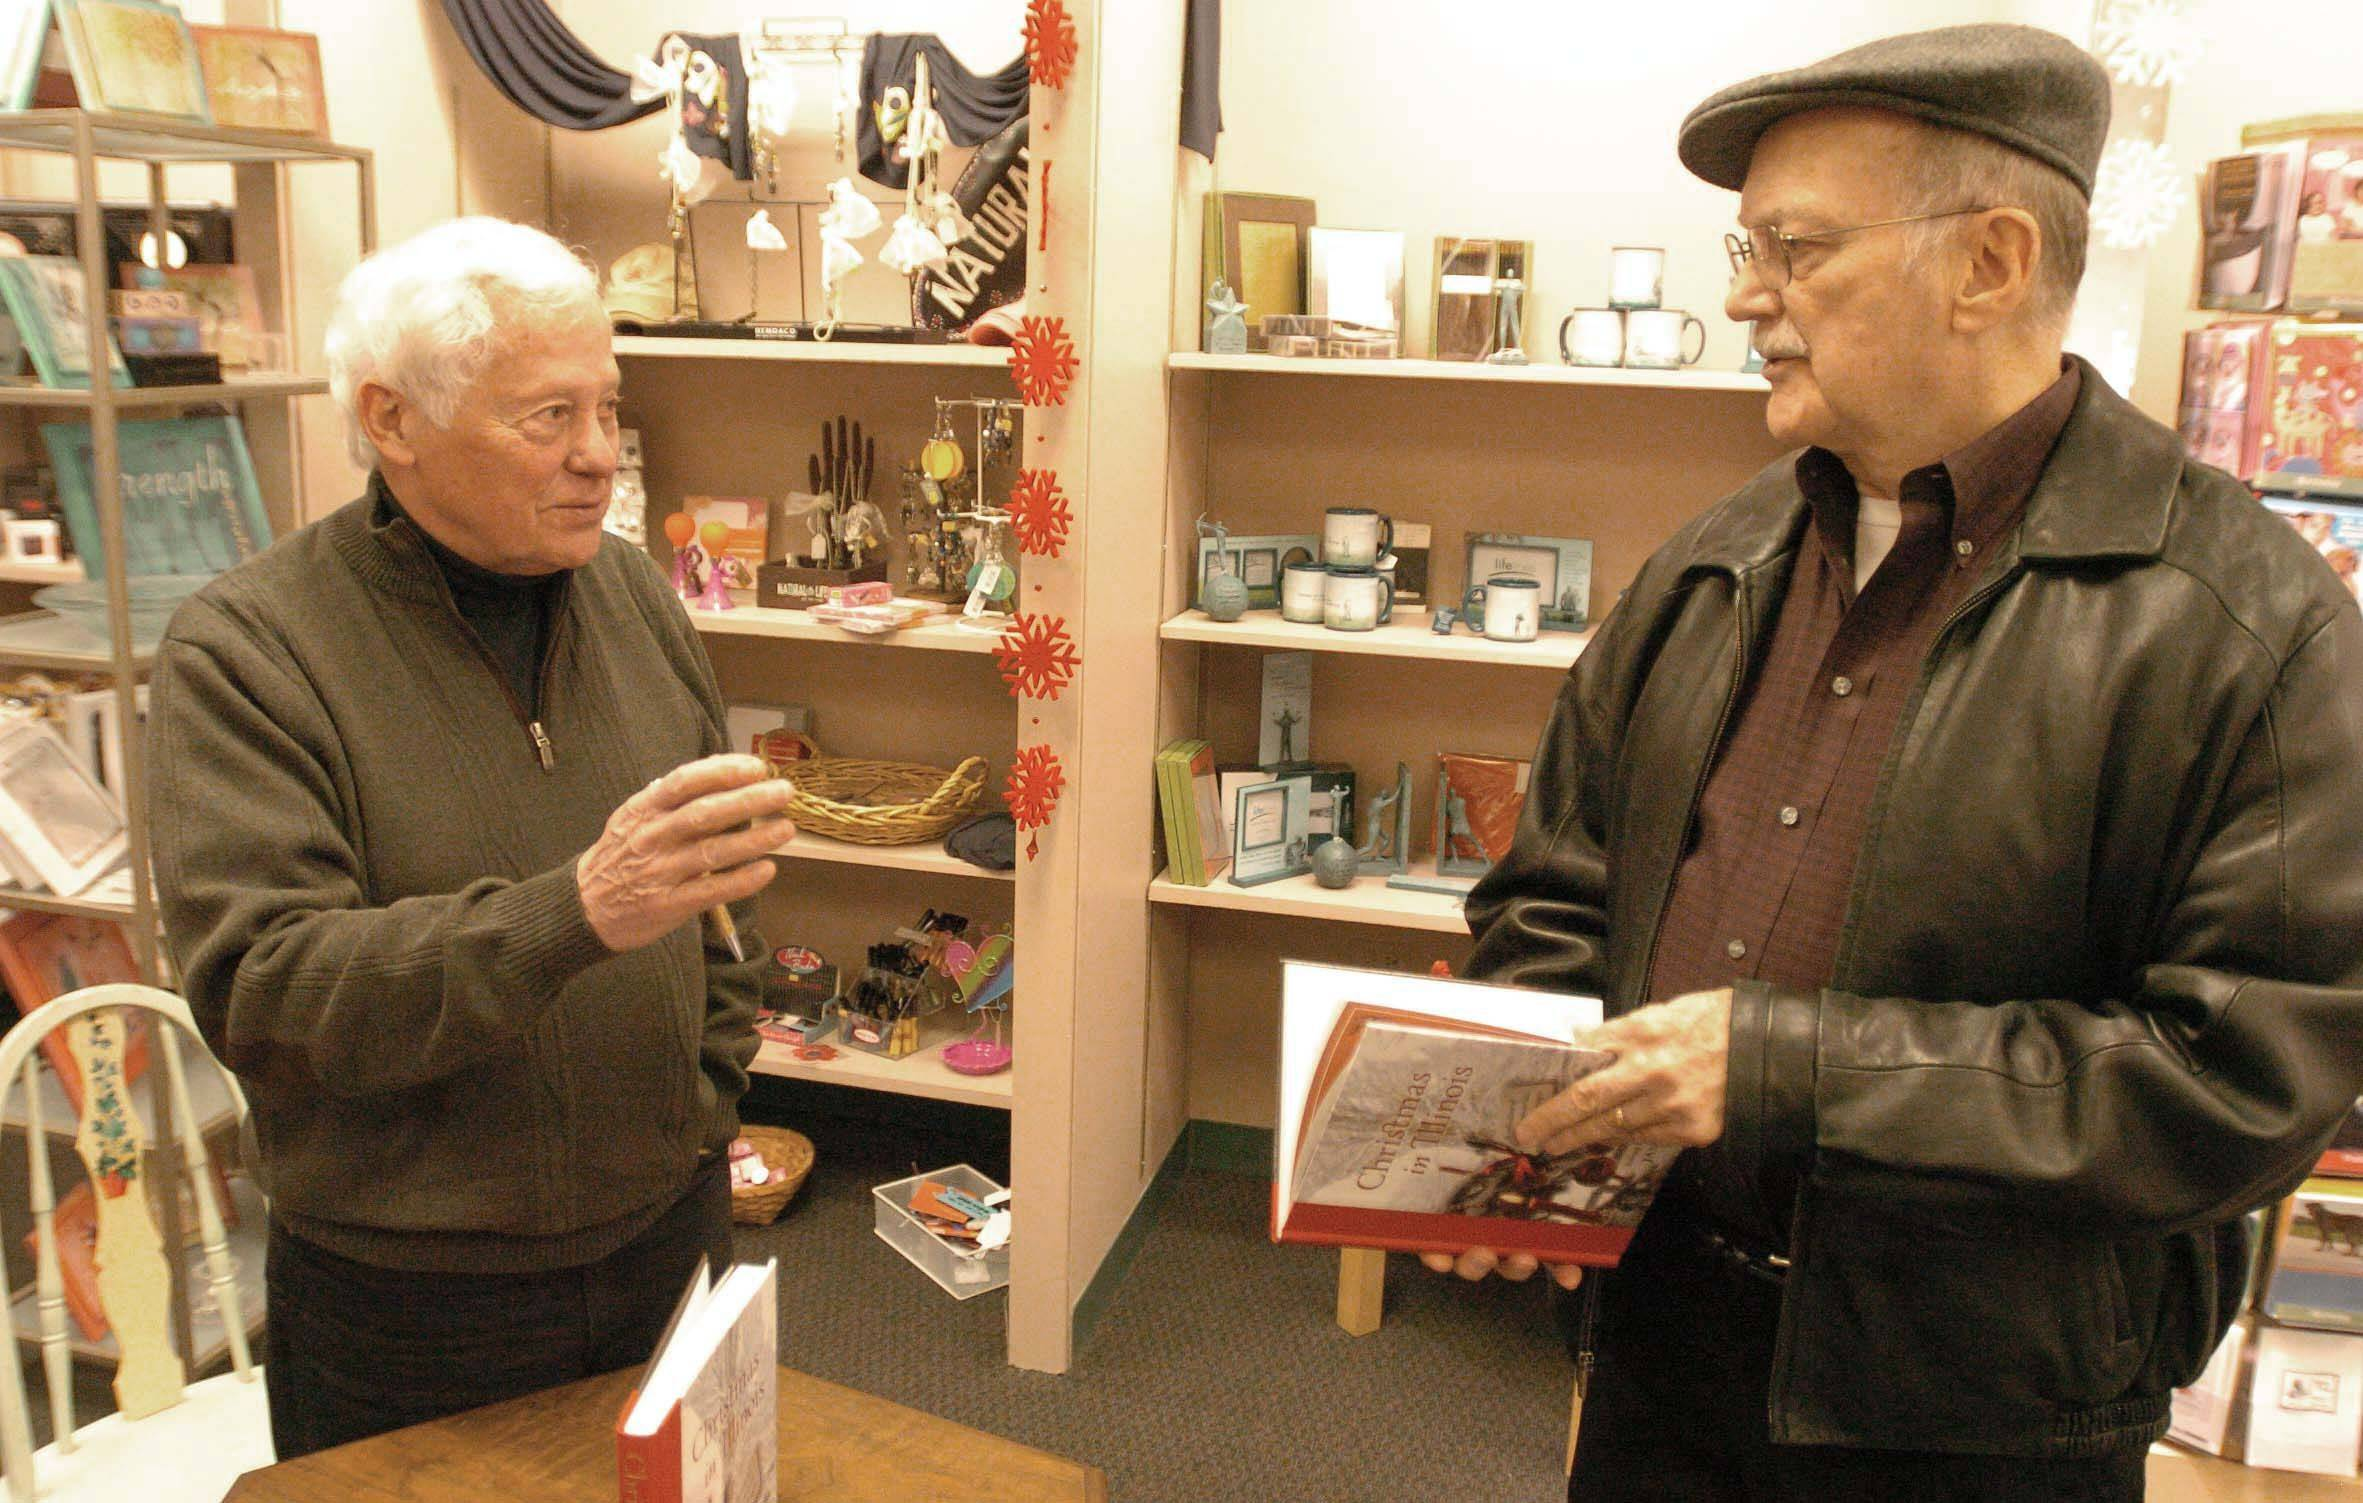 Author and editor James Ballowe, left, chats with Jack Lane during a recent book-signing at Anderson's Bookshop in Naperville.